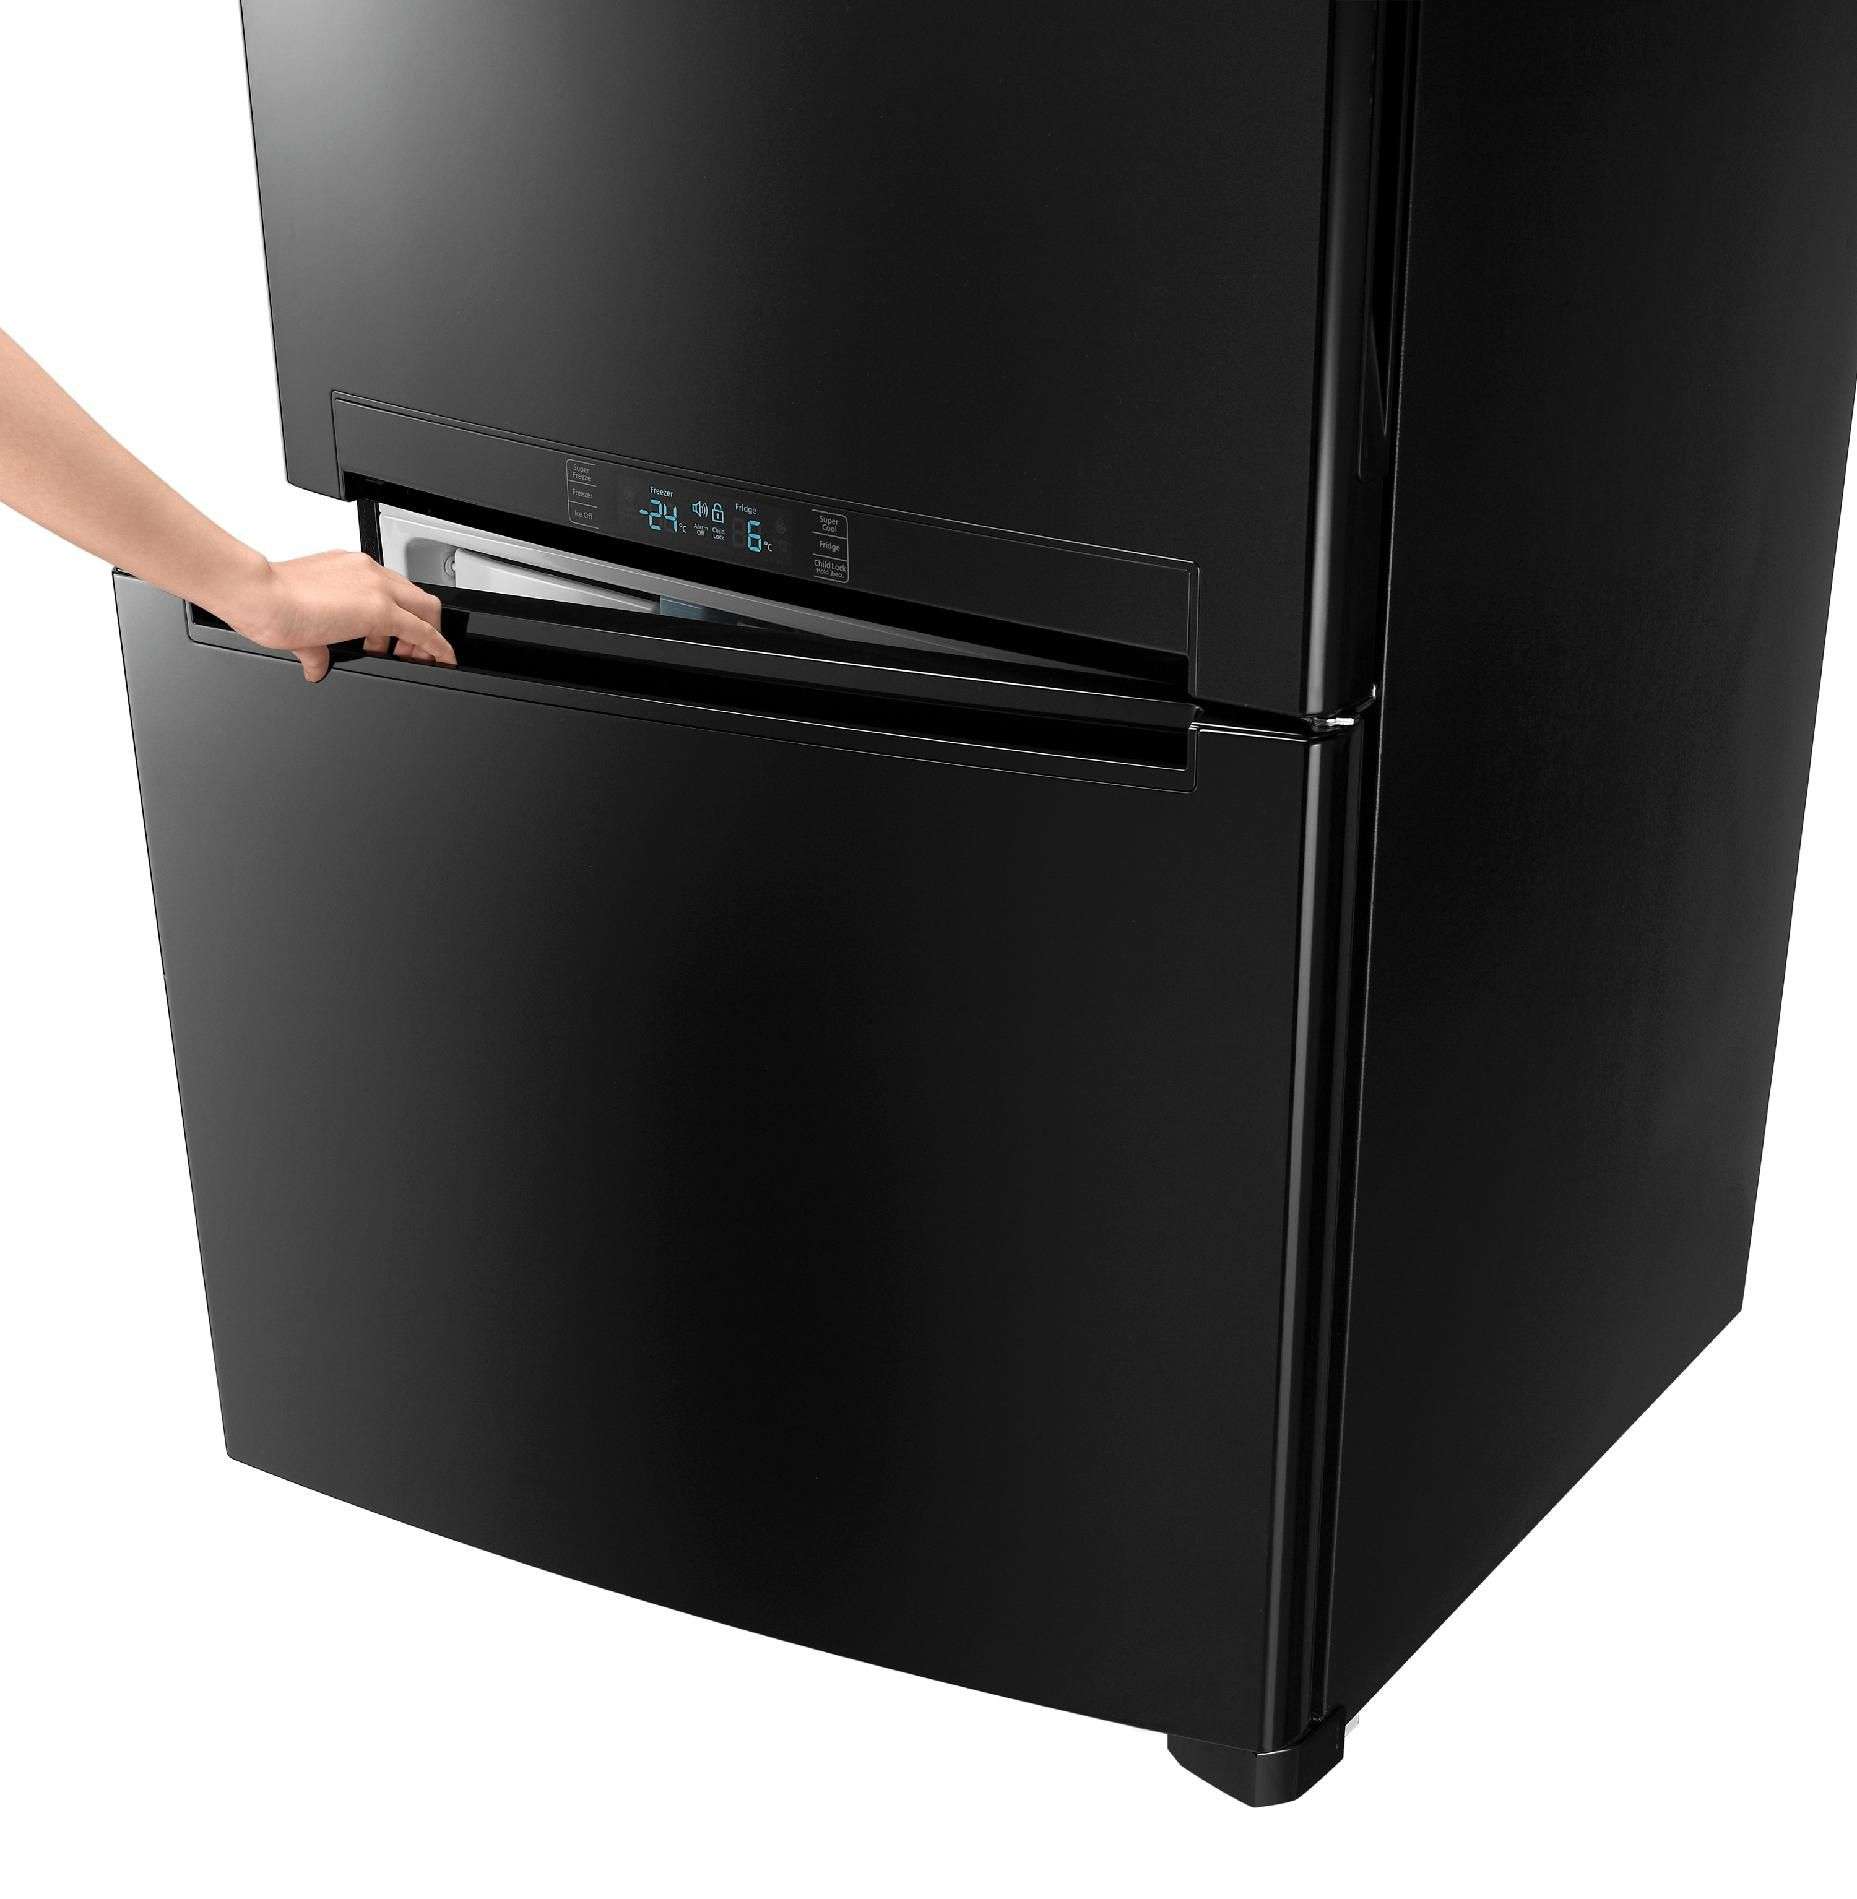 Samsung 20 cu. ft. Bottom Freezer with Side Swing Freezer Door - Black